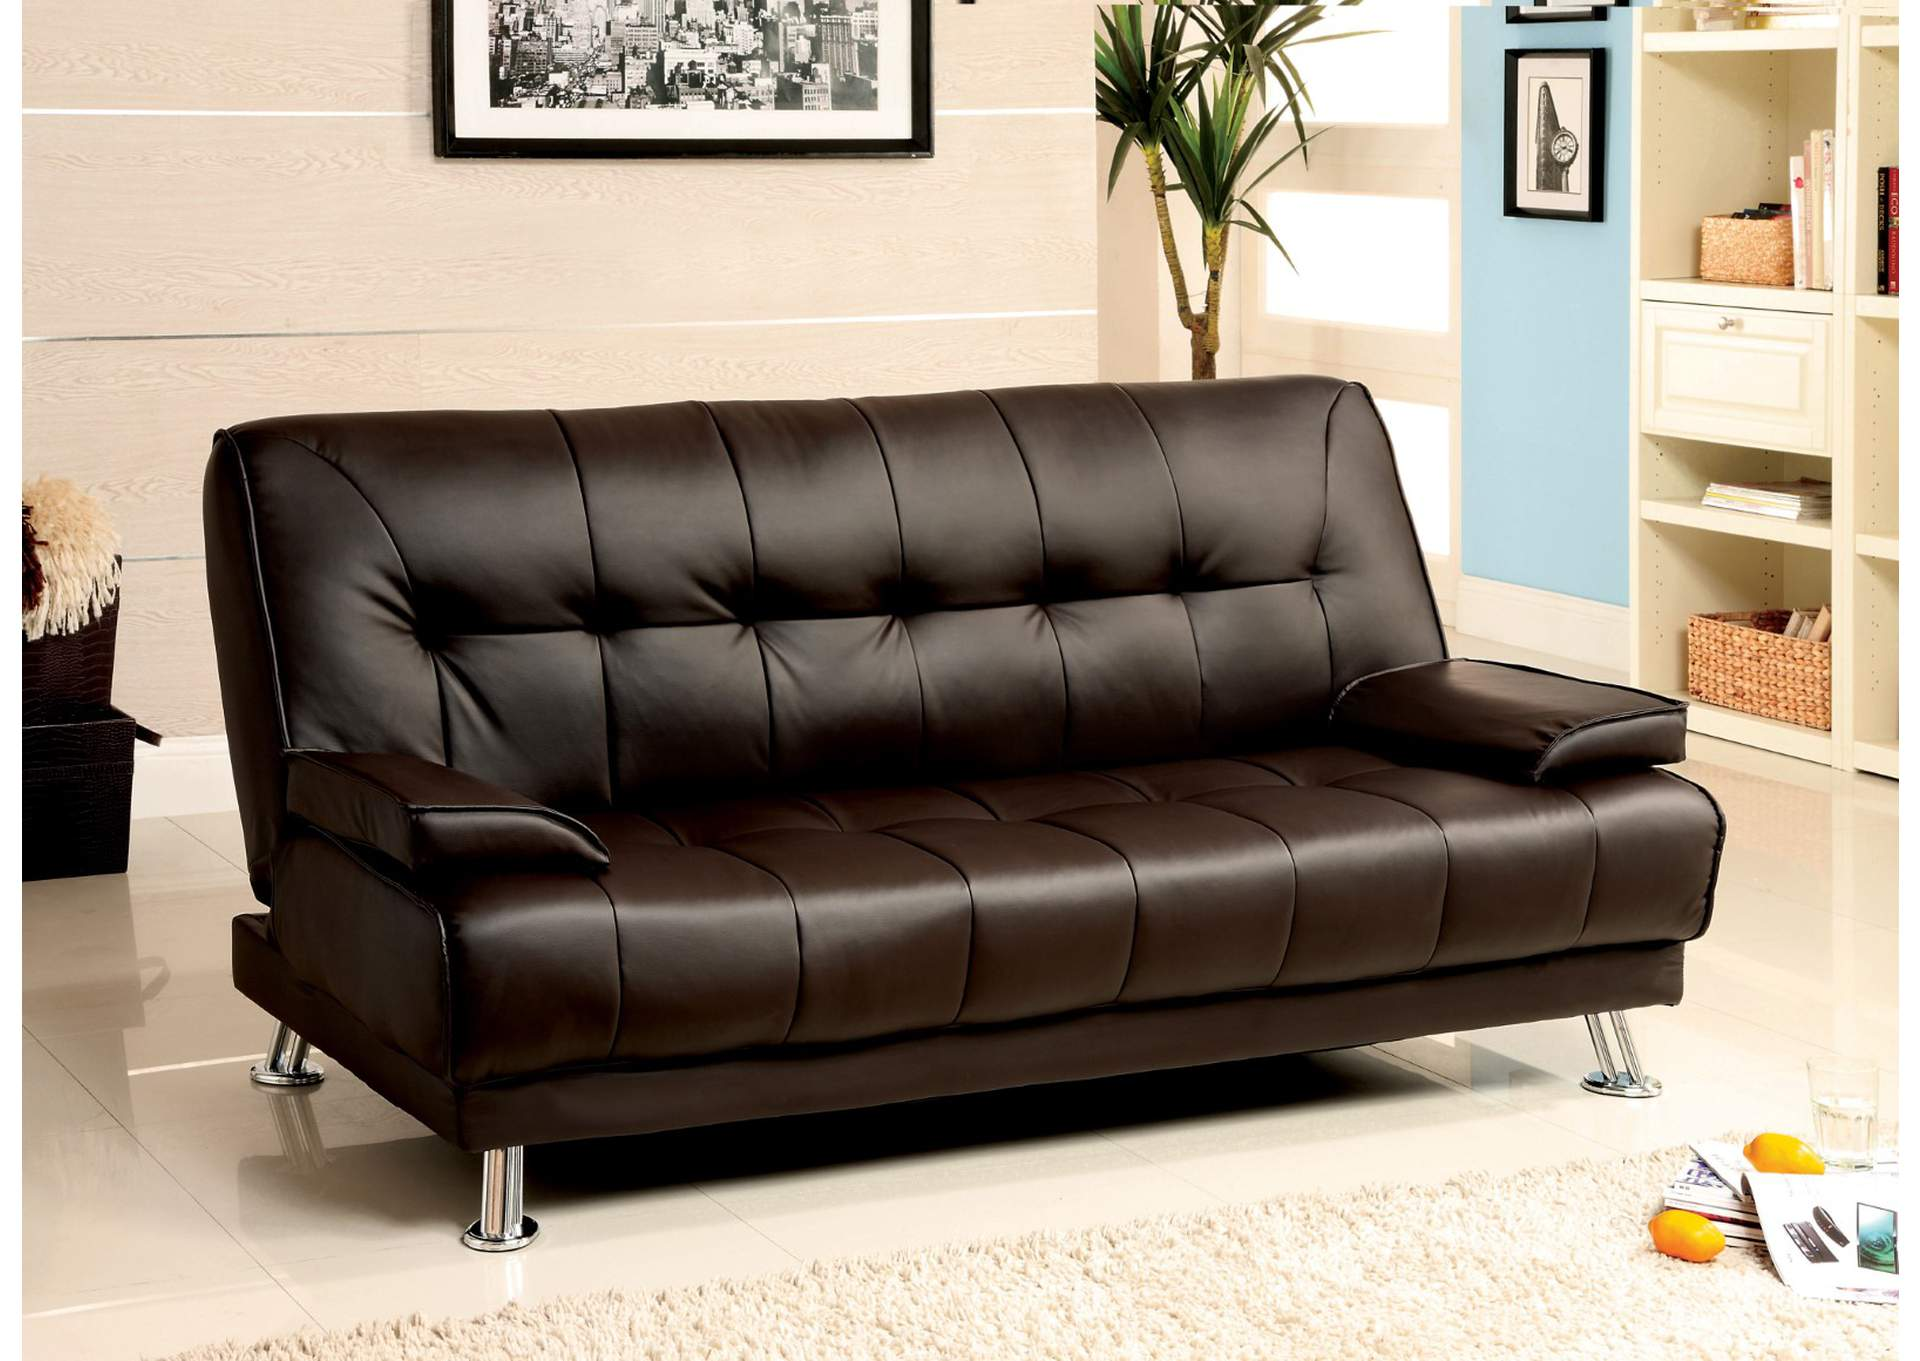 Beaumont Dark Brown Leatherette Futon Sofa,Furniture of America